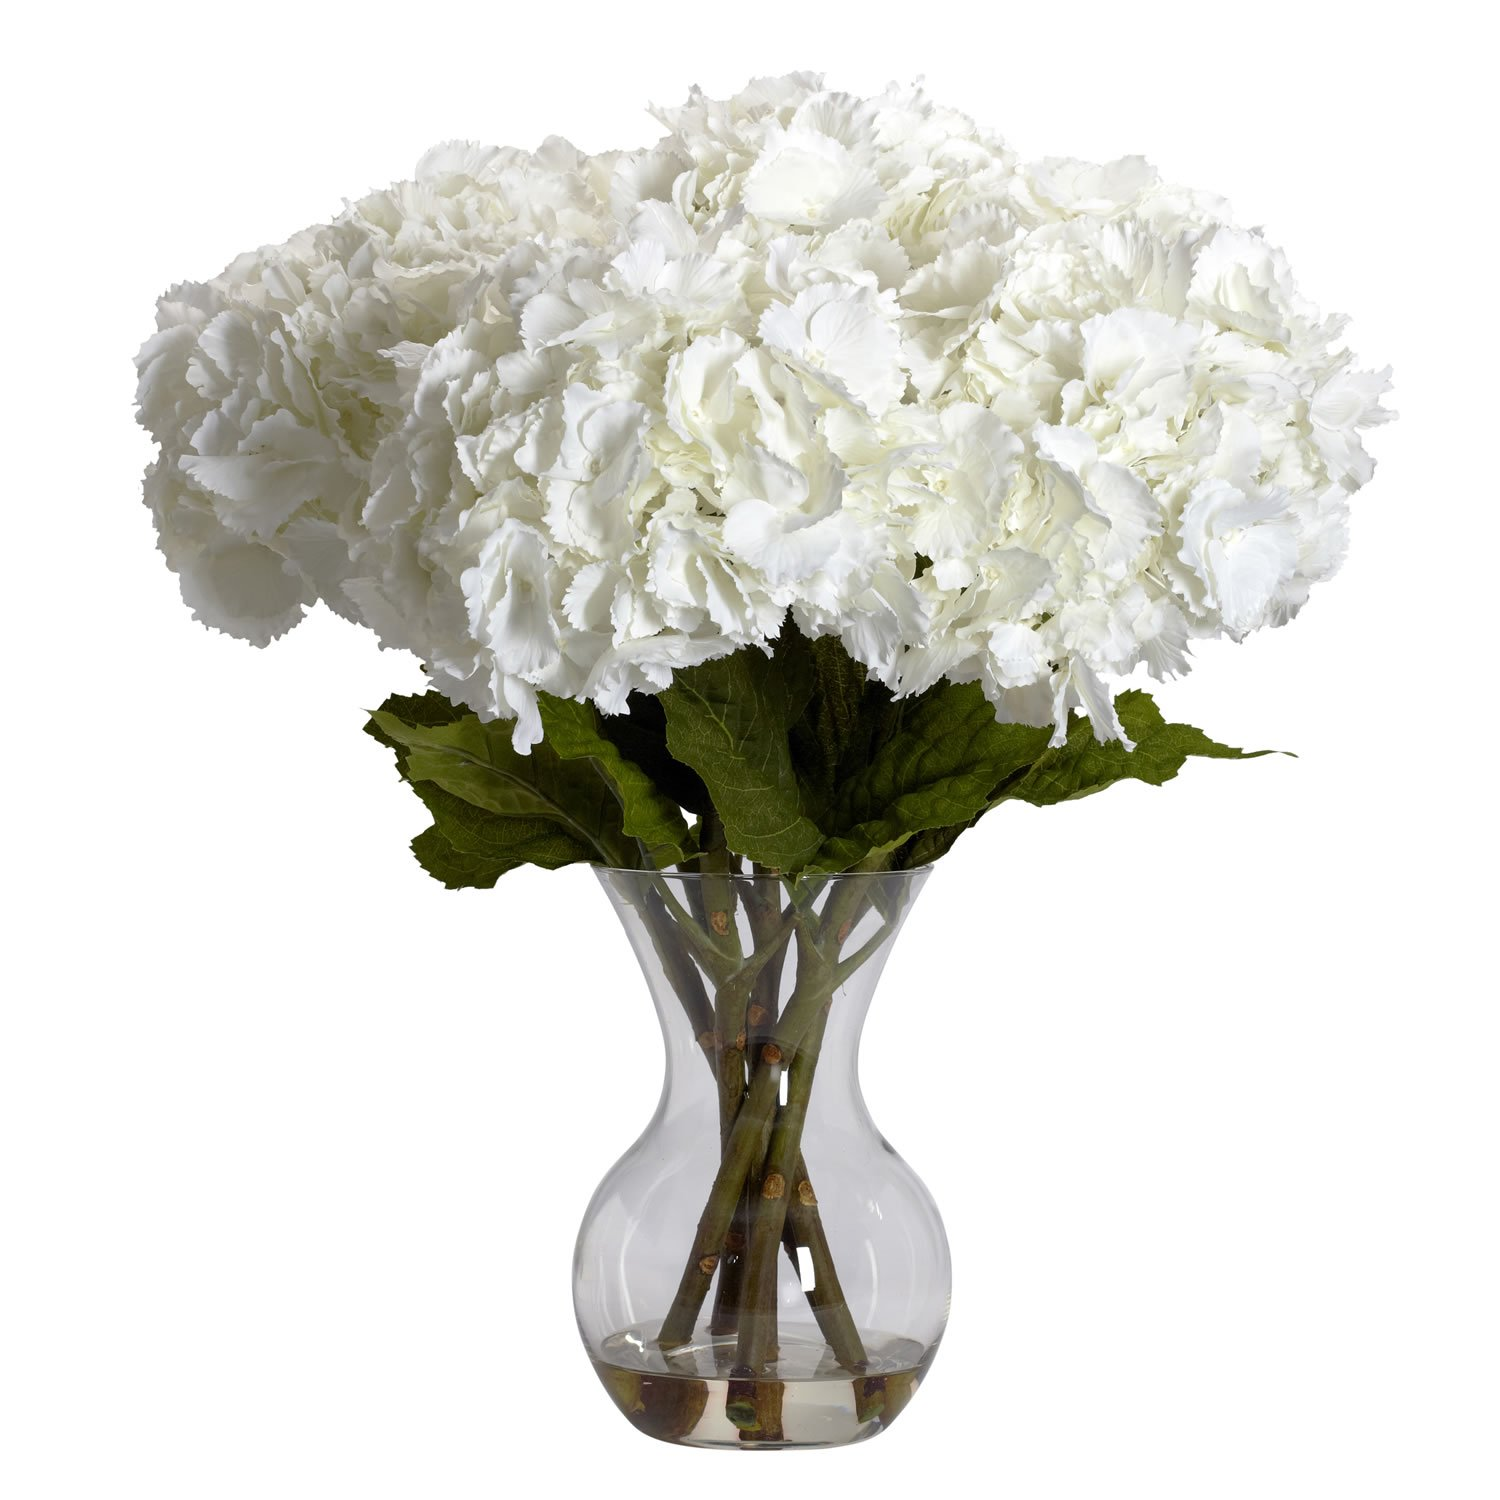 Amazon nearly natural 1260 large hydrangea with vase silk amazon nearly natural 1260 large hydrangea with vase silk flower arrangement white home kitchen mightylinksfo Image collections